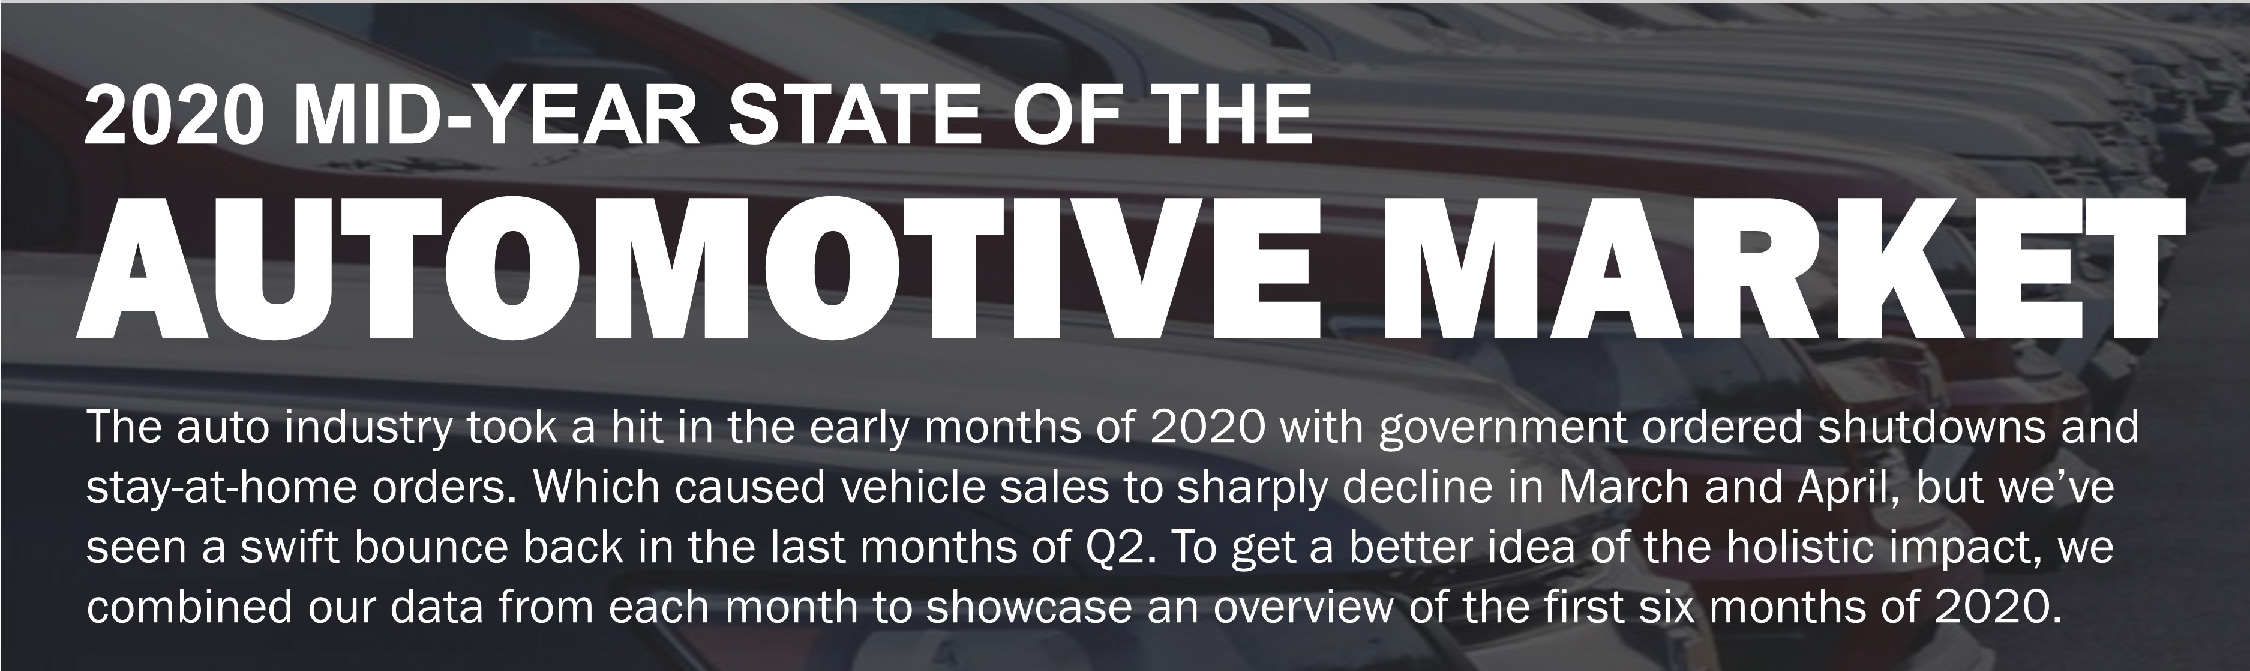 [Infographic] Mid-Year State of the Automotive Market